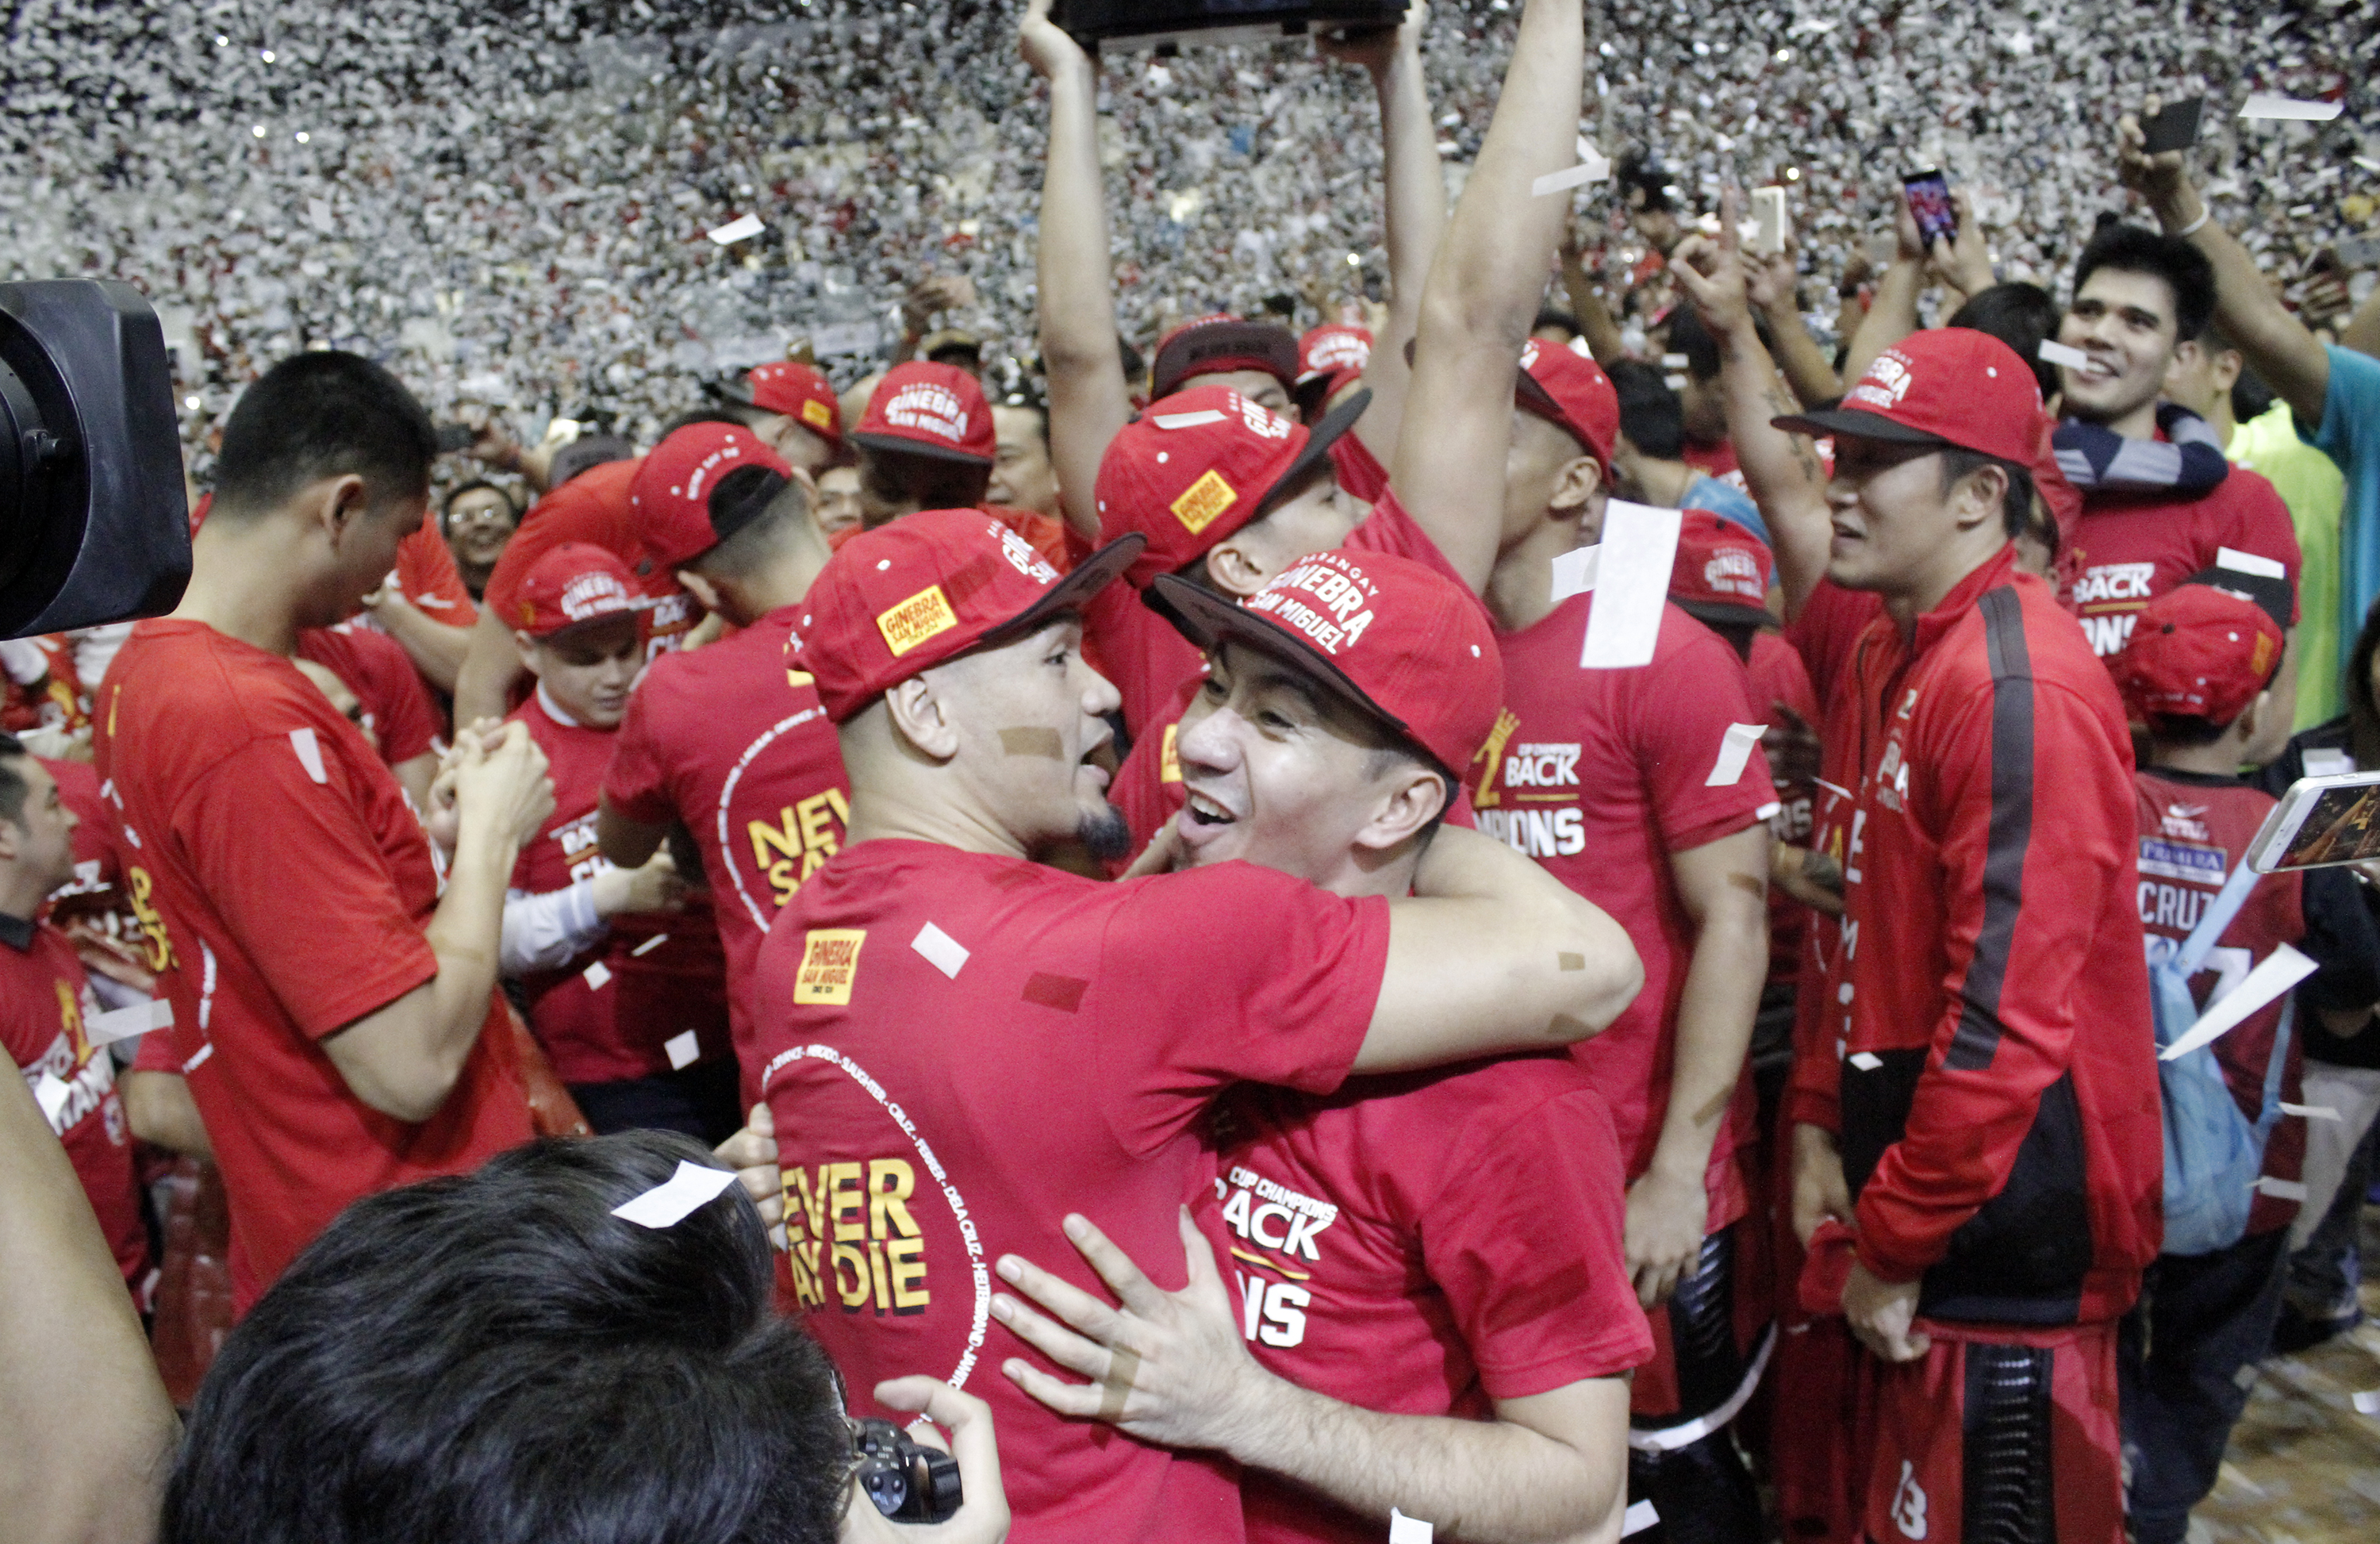 CHAMPIONS AGAIN. Barangay Ginebra once again denies Meralco its first championship. Photo from PBA Images